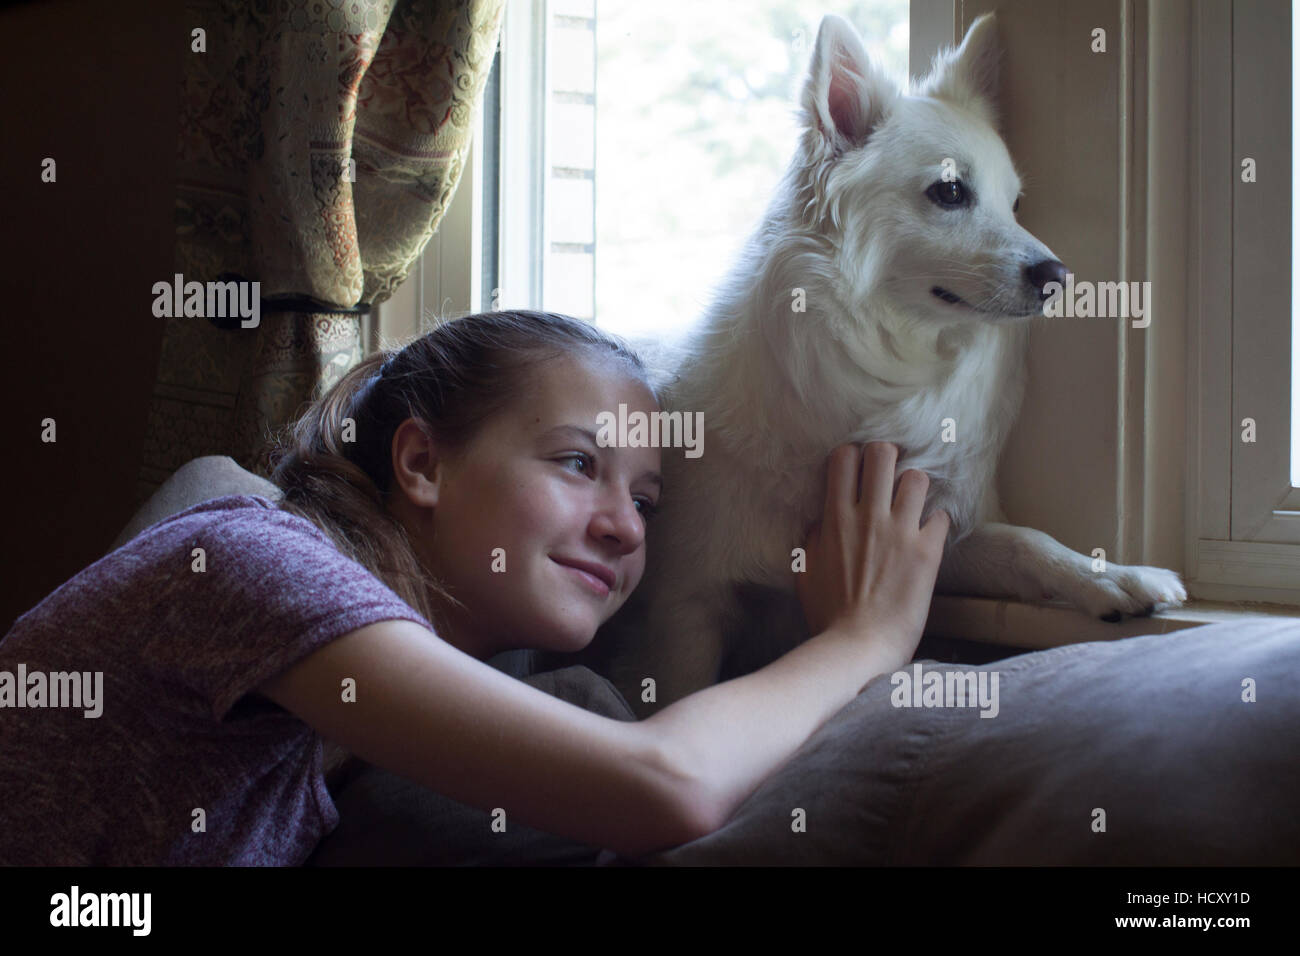 Teenage blonde girl with a white dog looking through the window - Stock Image